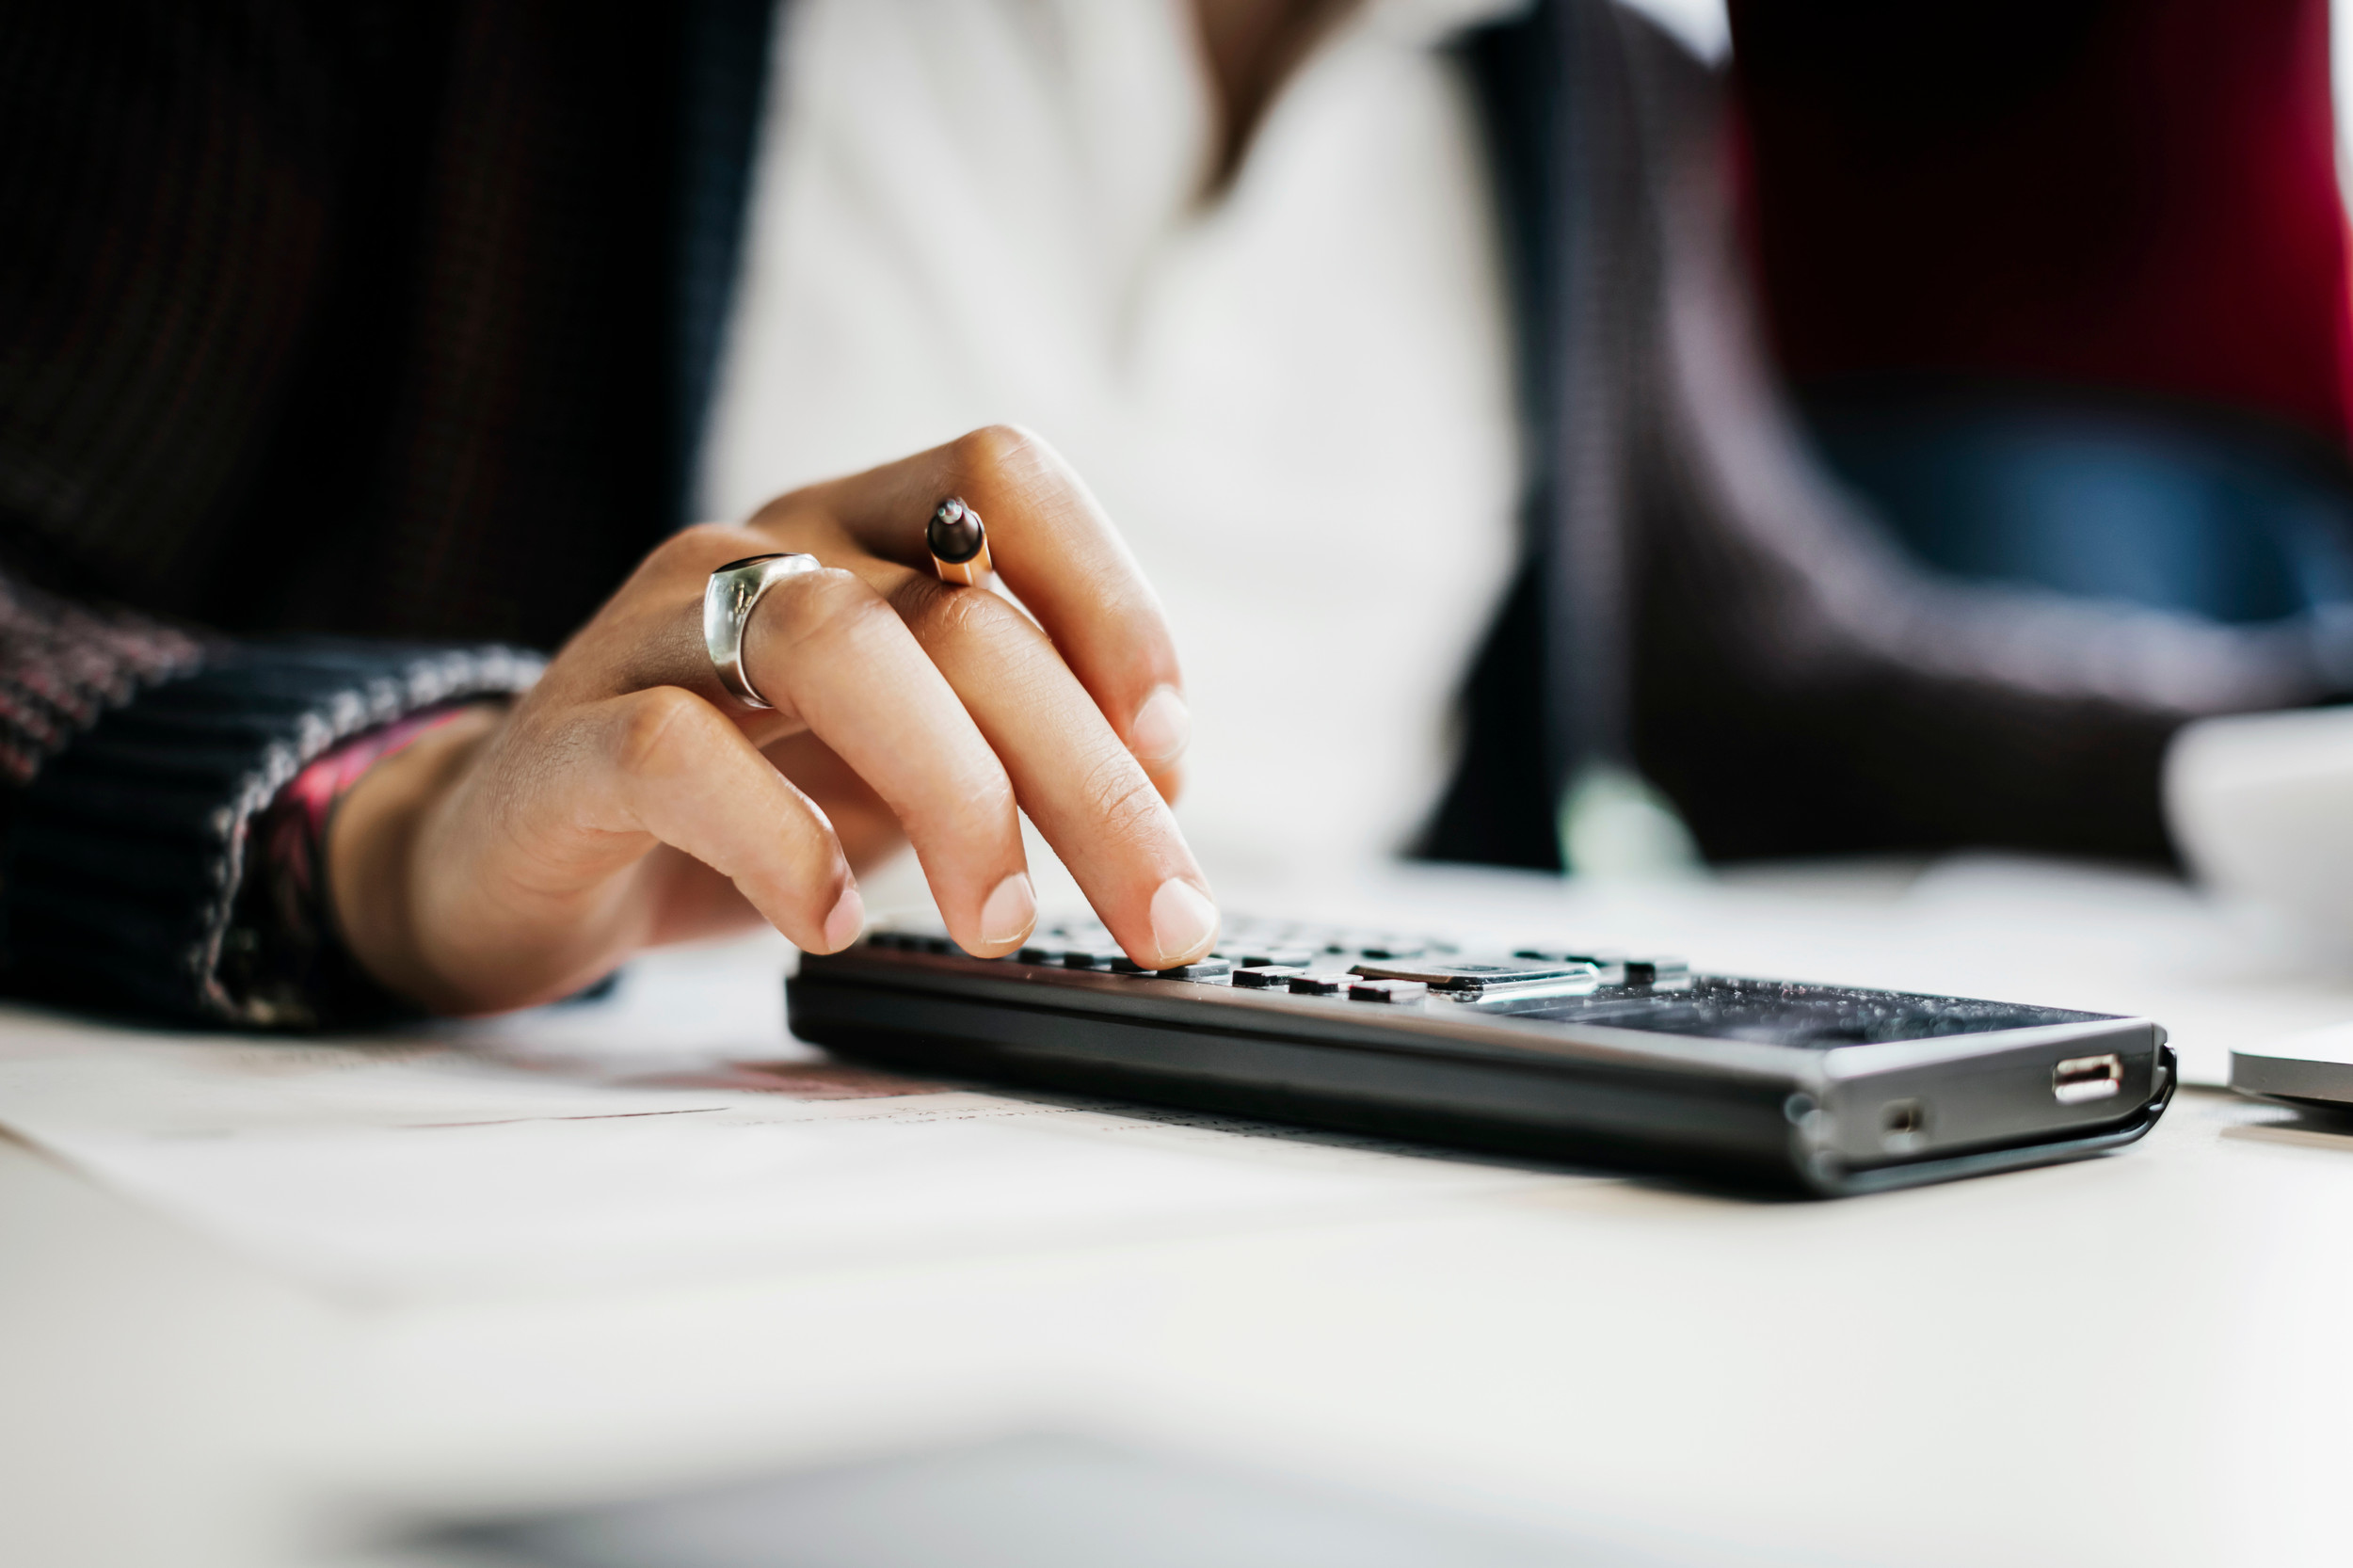 A financial planner shares 4 simple but critical budgeting tips for managing money during COVID-19